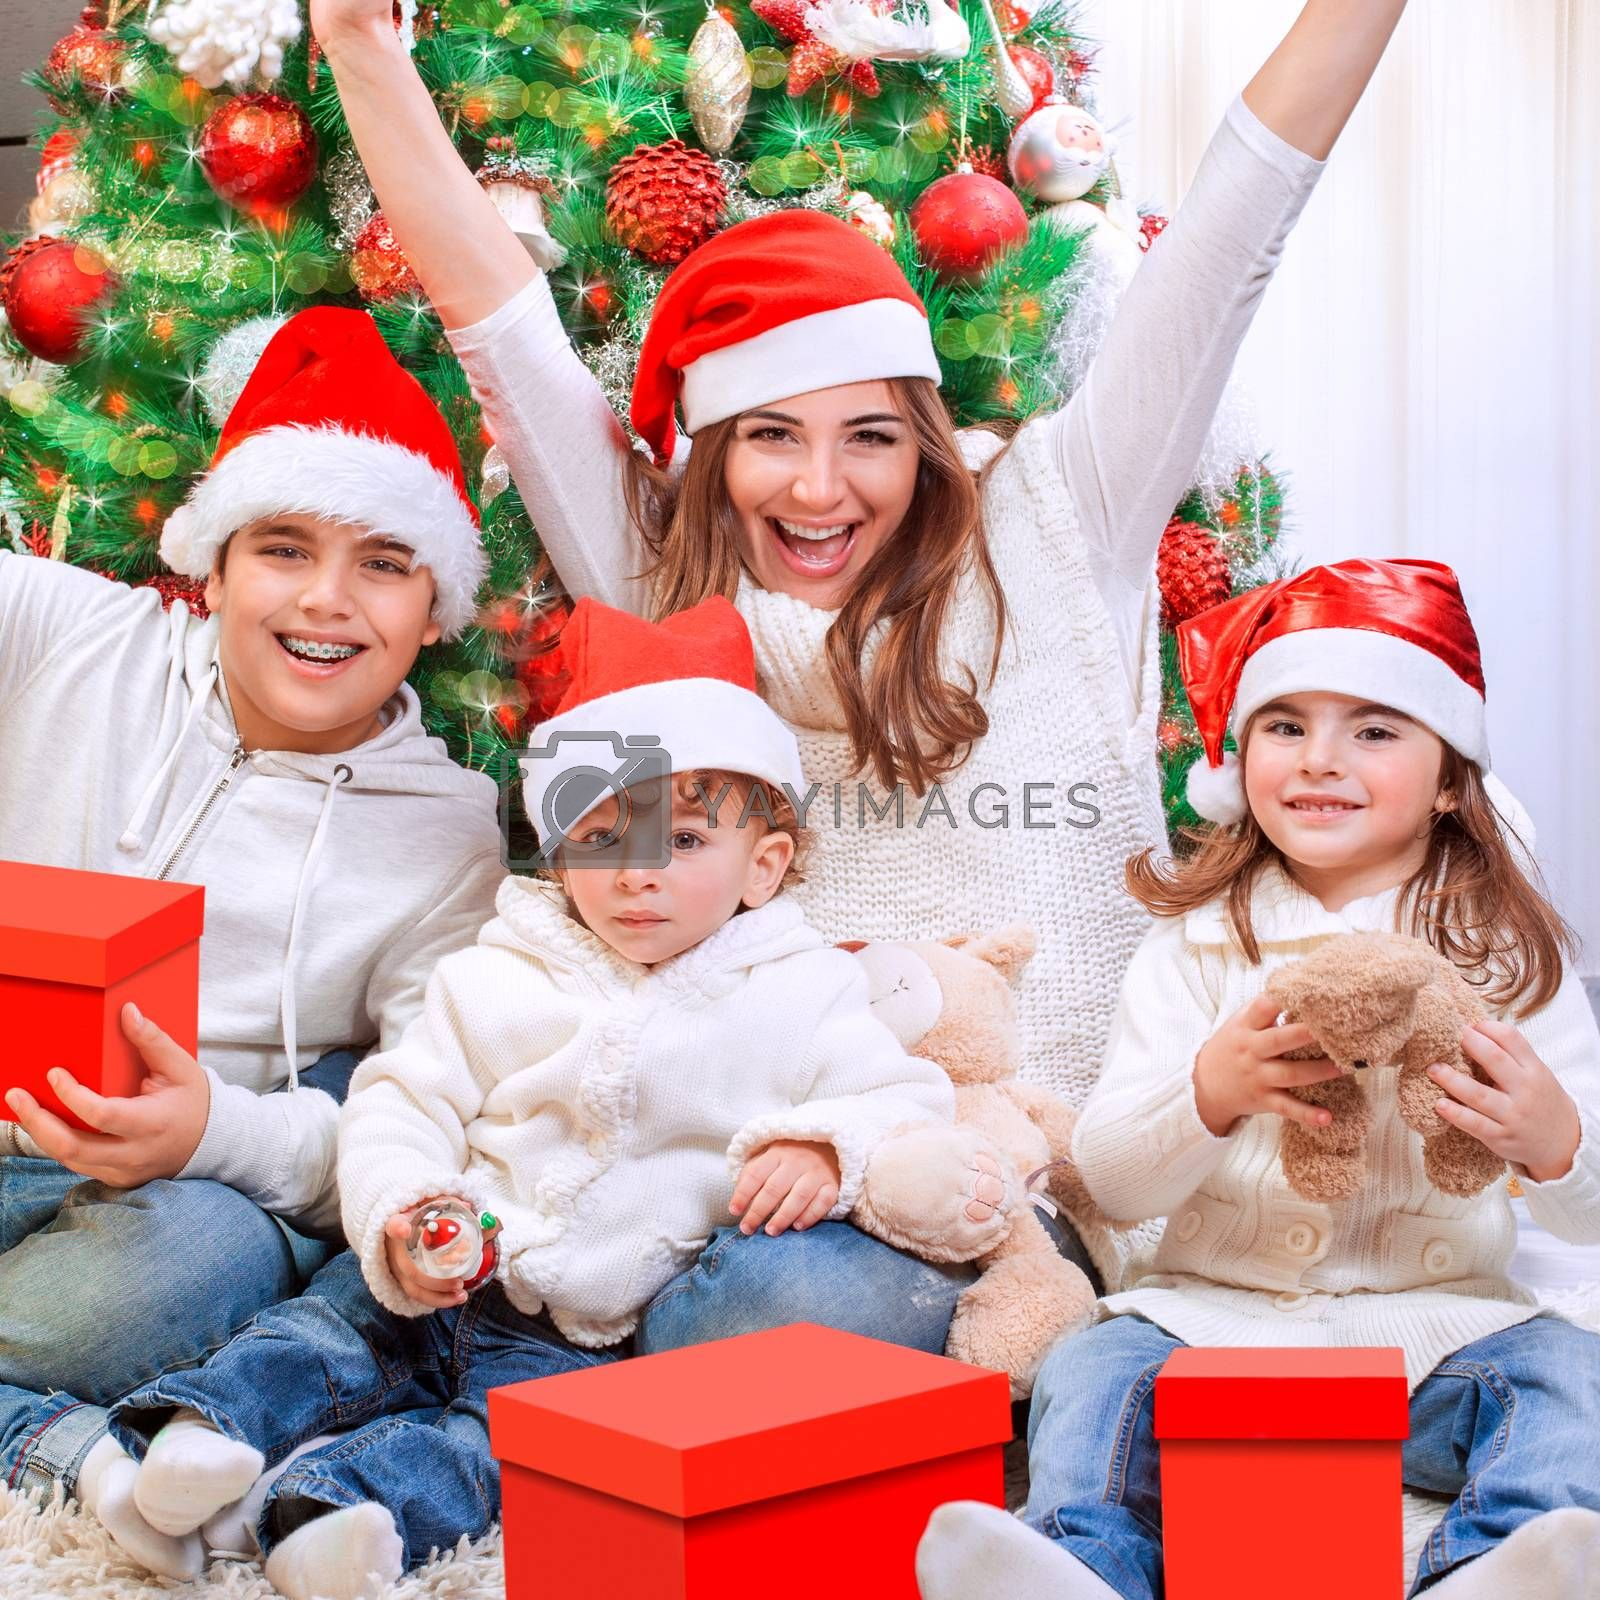 Portrait of happy mother with three cheerful kids enjoying gifts receiving from Santa Claus, having fun near Christmas tree